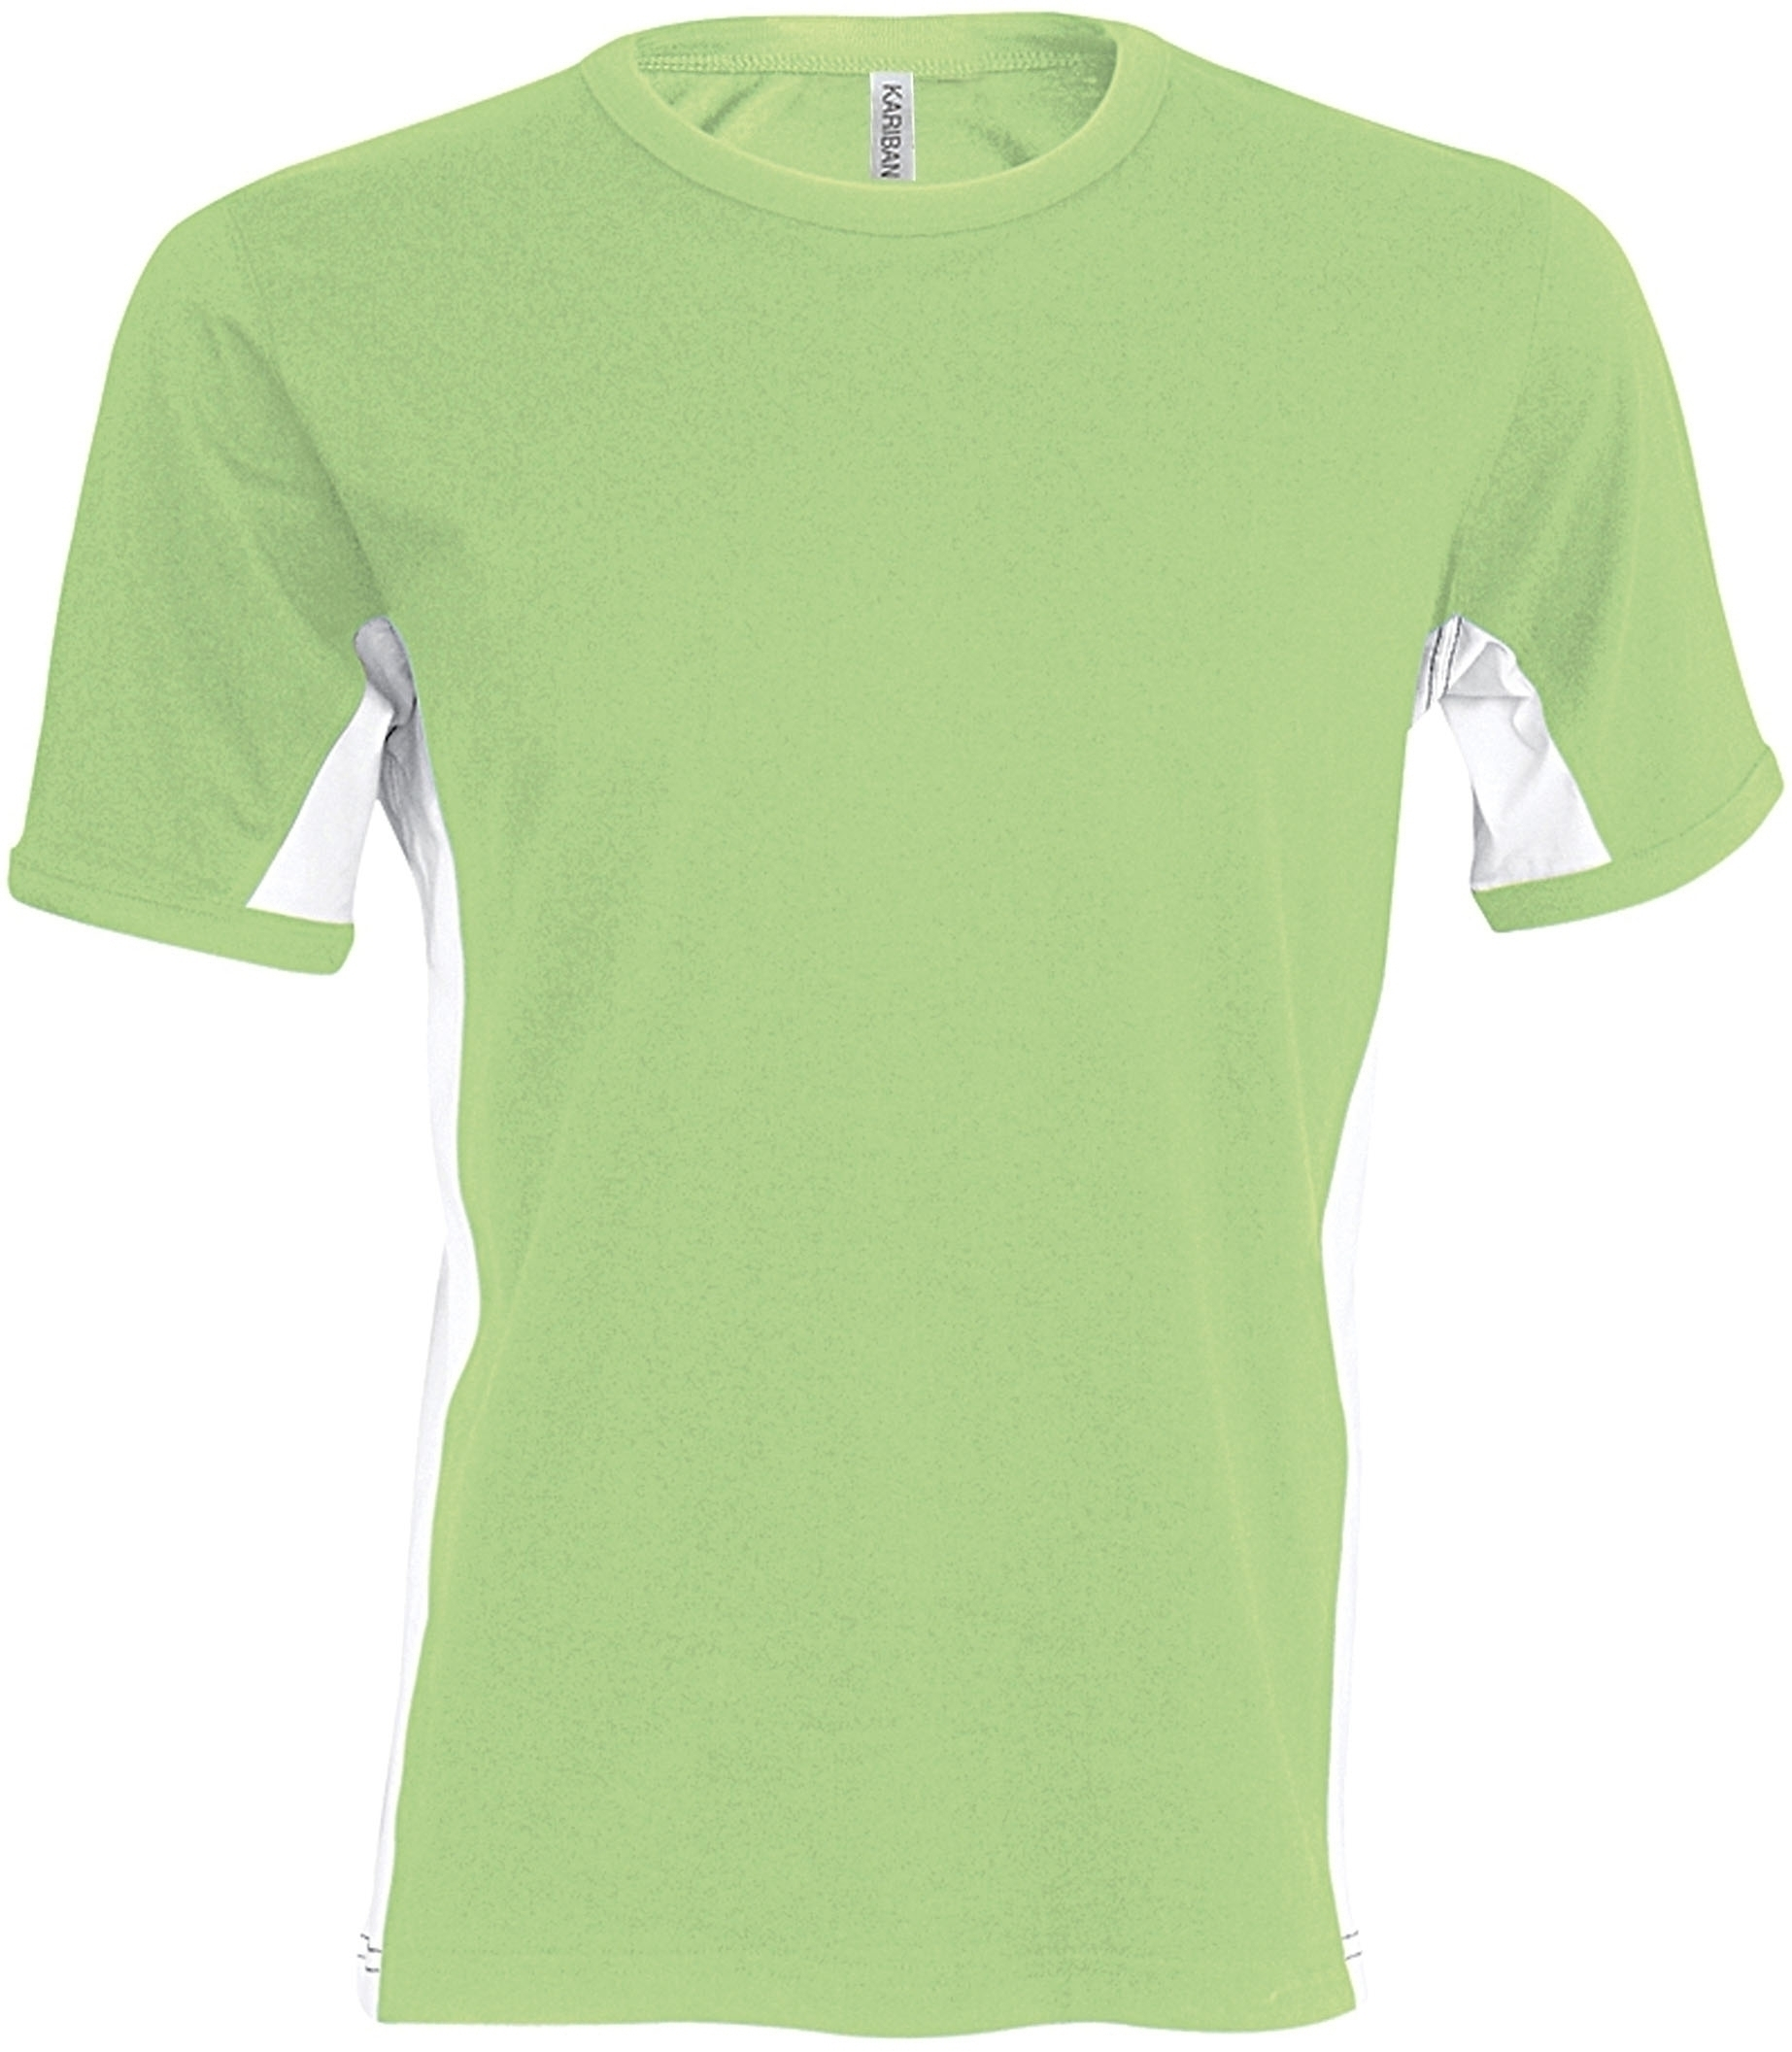 TIGER > T-SHIRT BICOLORE MANCHES COURTES Lime / White Vert